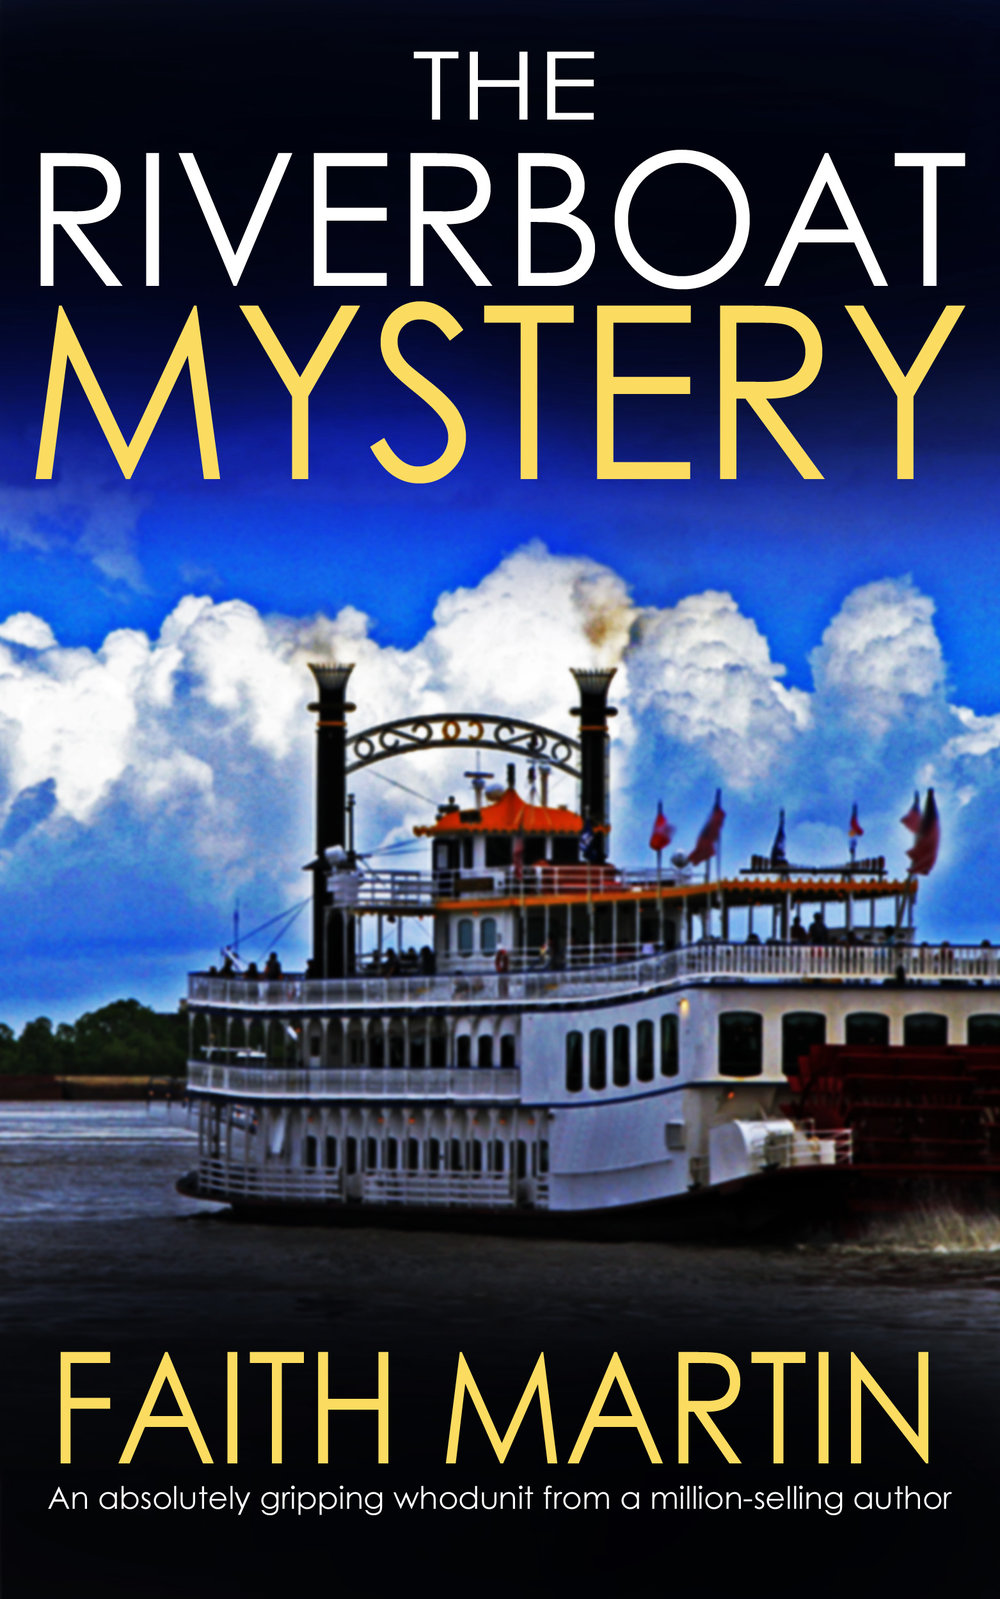 RIVER BOAT MYSTERY cover.jpg